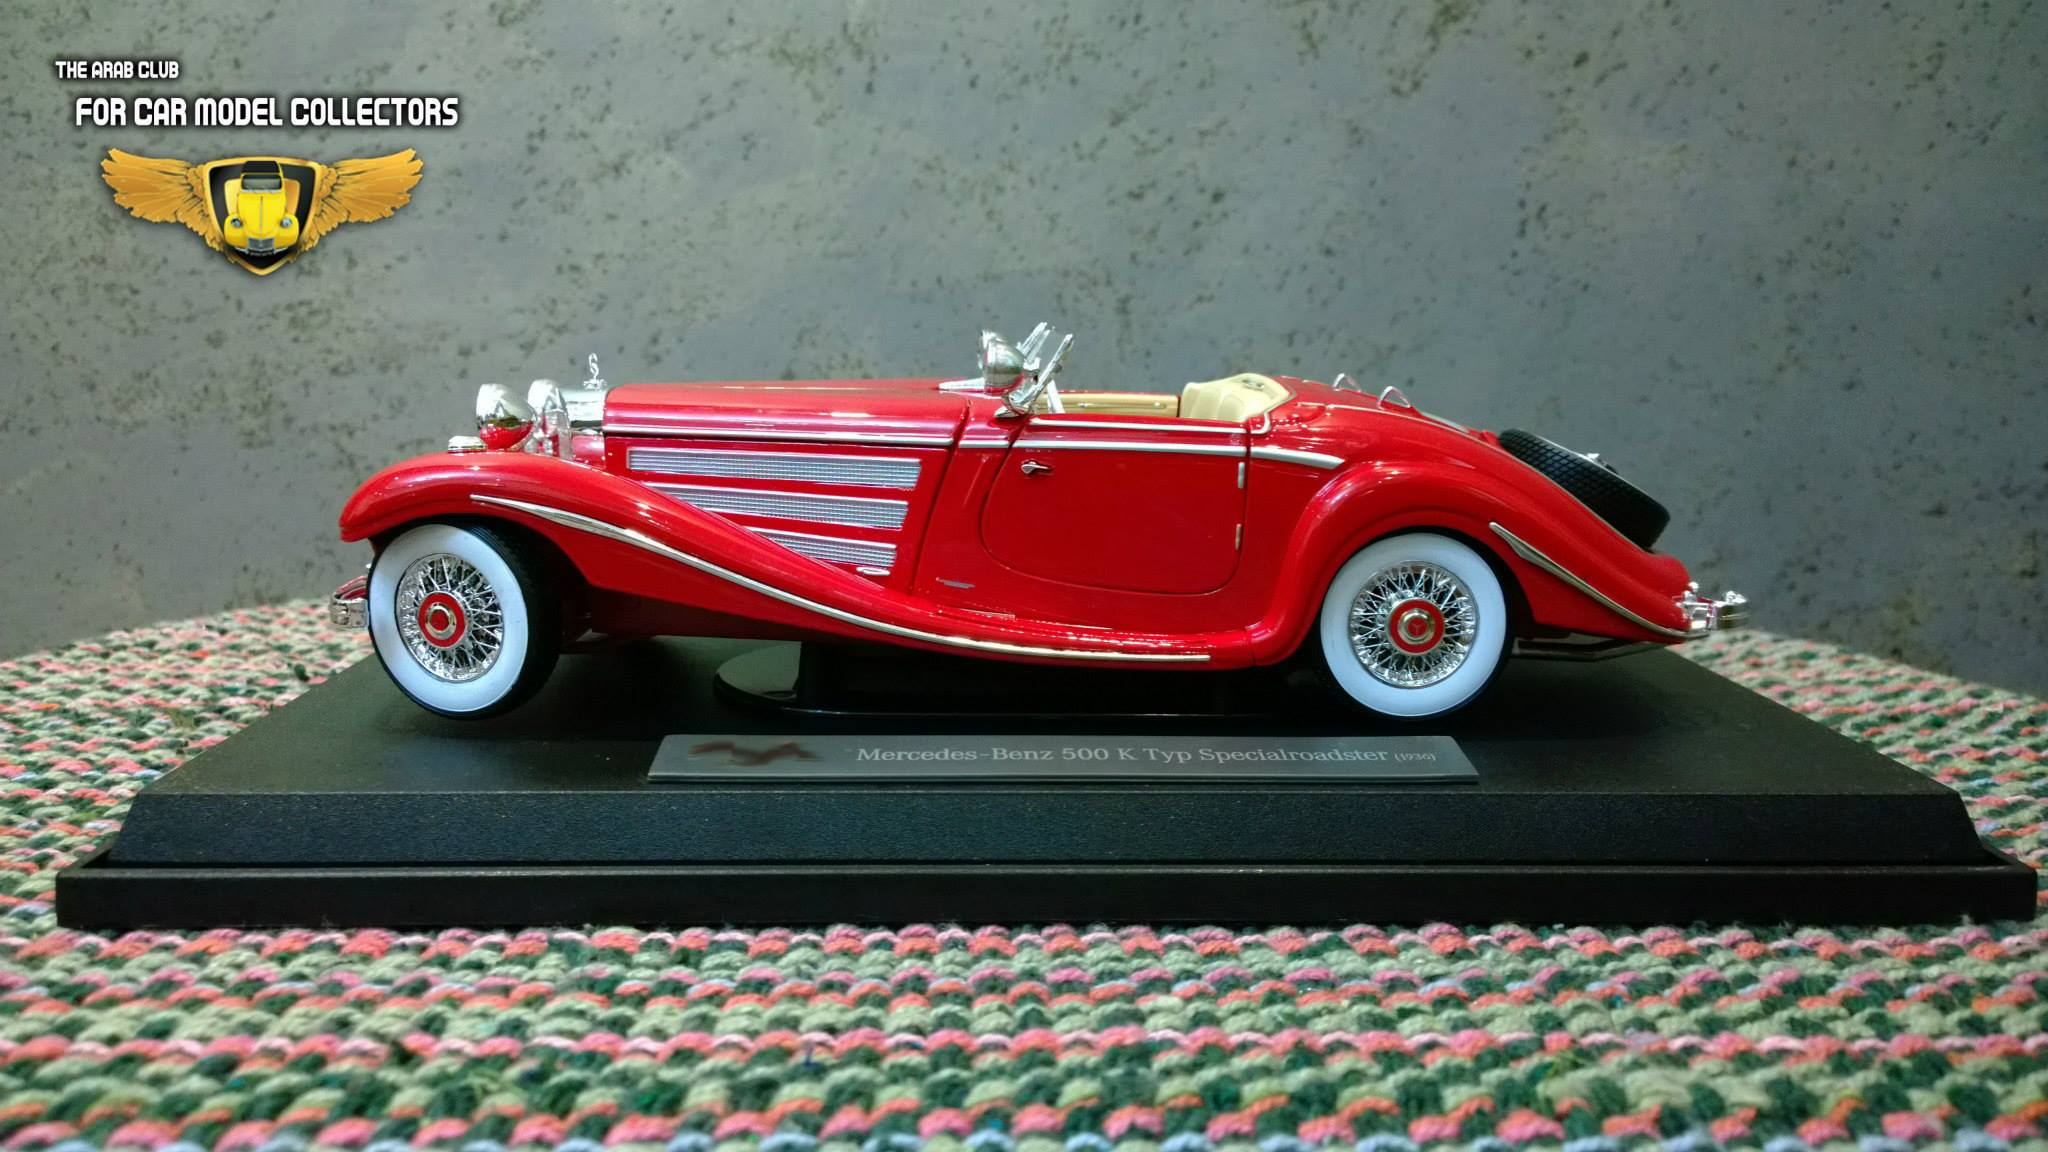 Mercedes-Benz 500 K Special-Roadster 1936